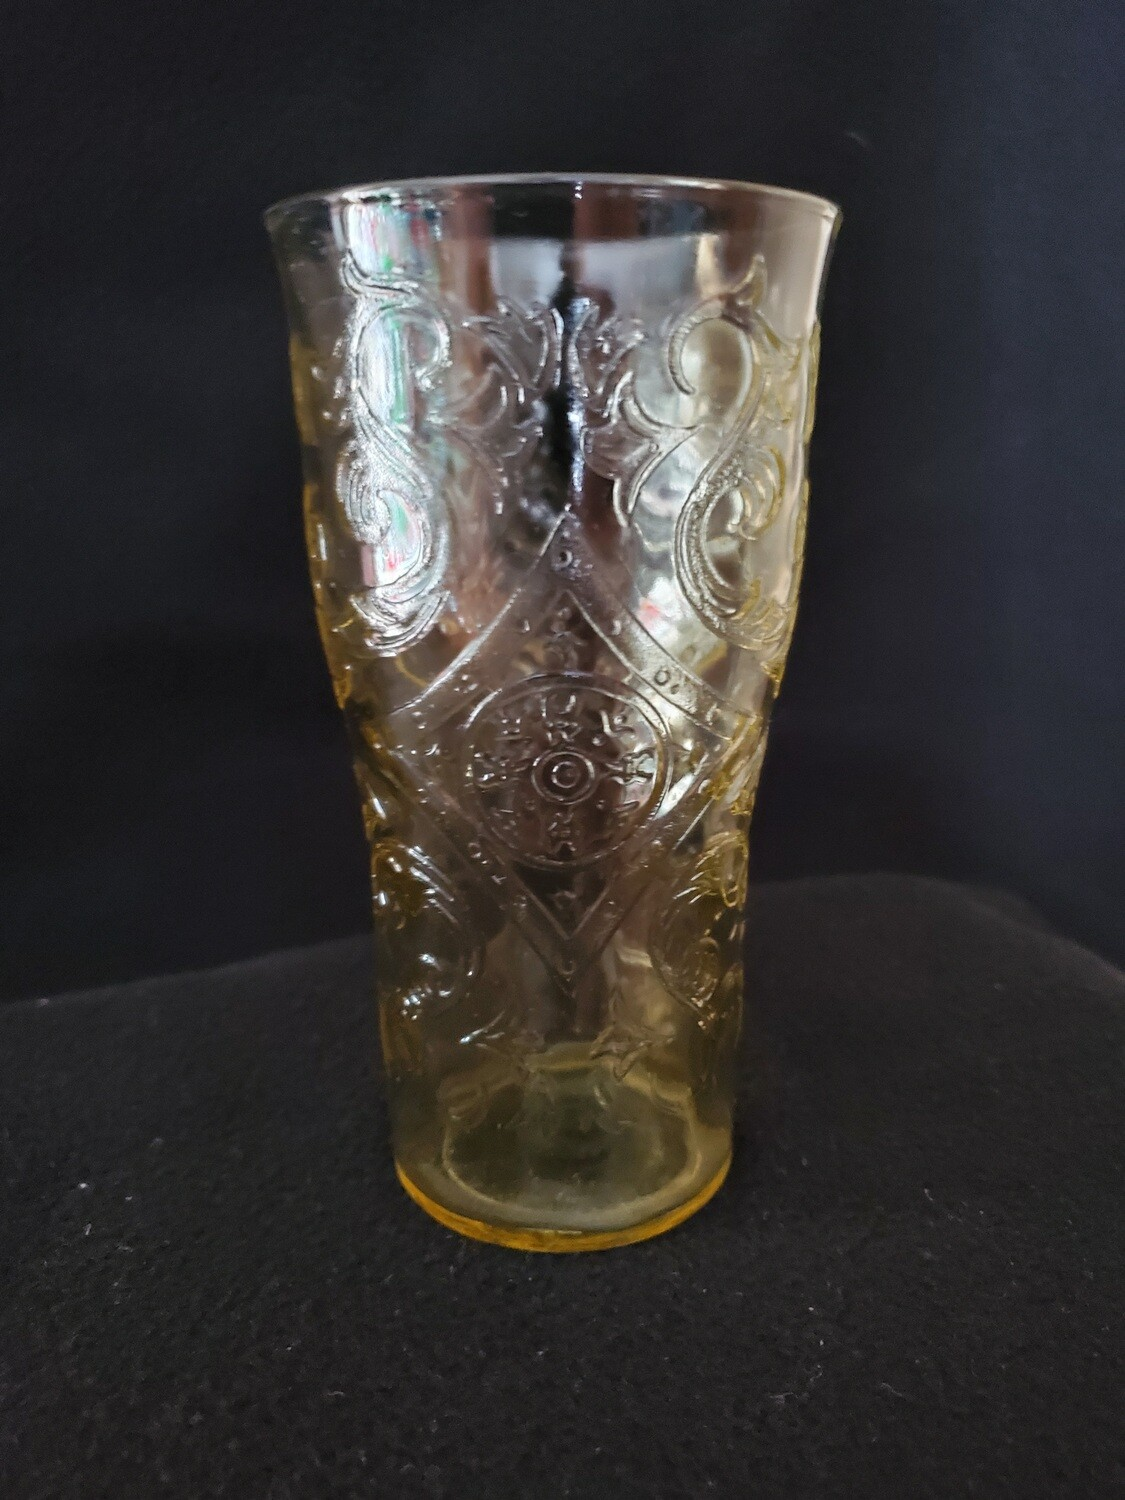 "Vintage, Flat Iced Tea Glass, 5 1/2"" 12 oz., Straight Base, Madrid Amber Depression Glass by Federal Glass."